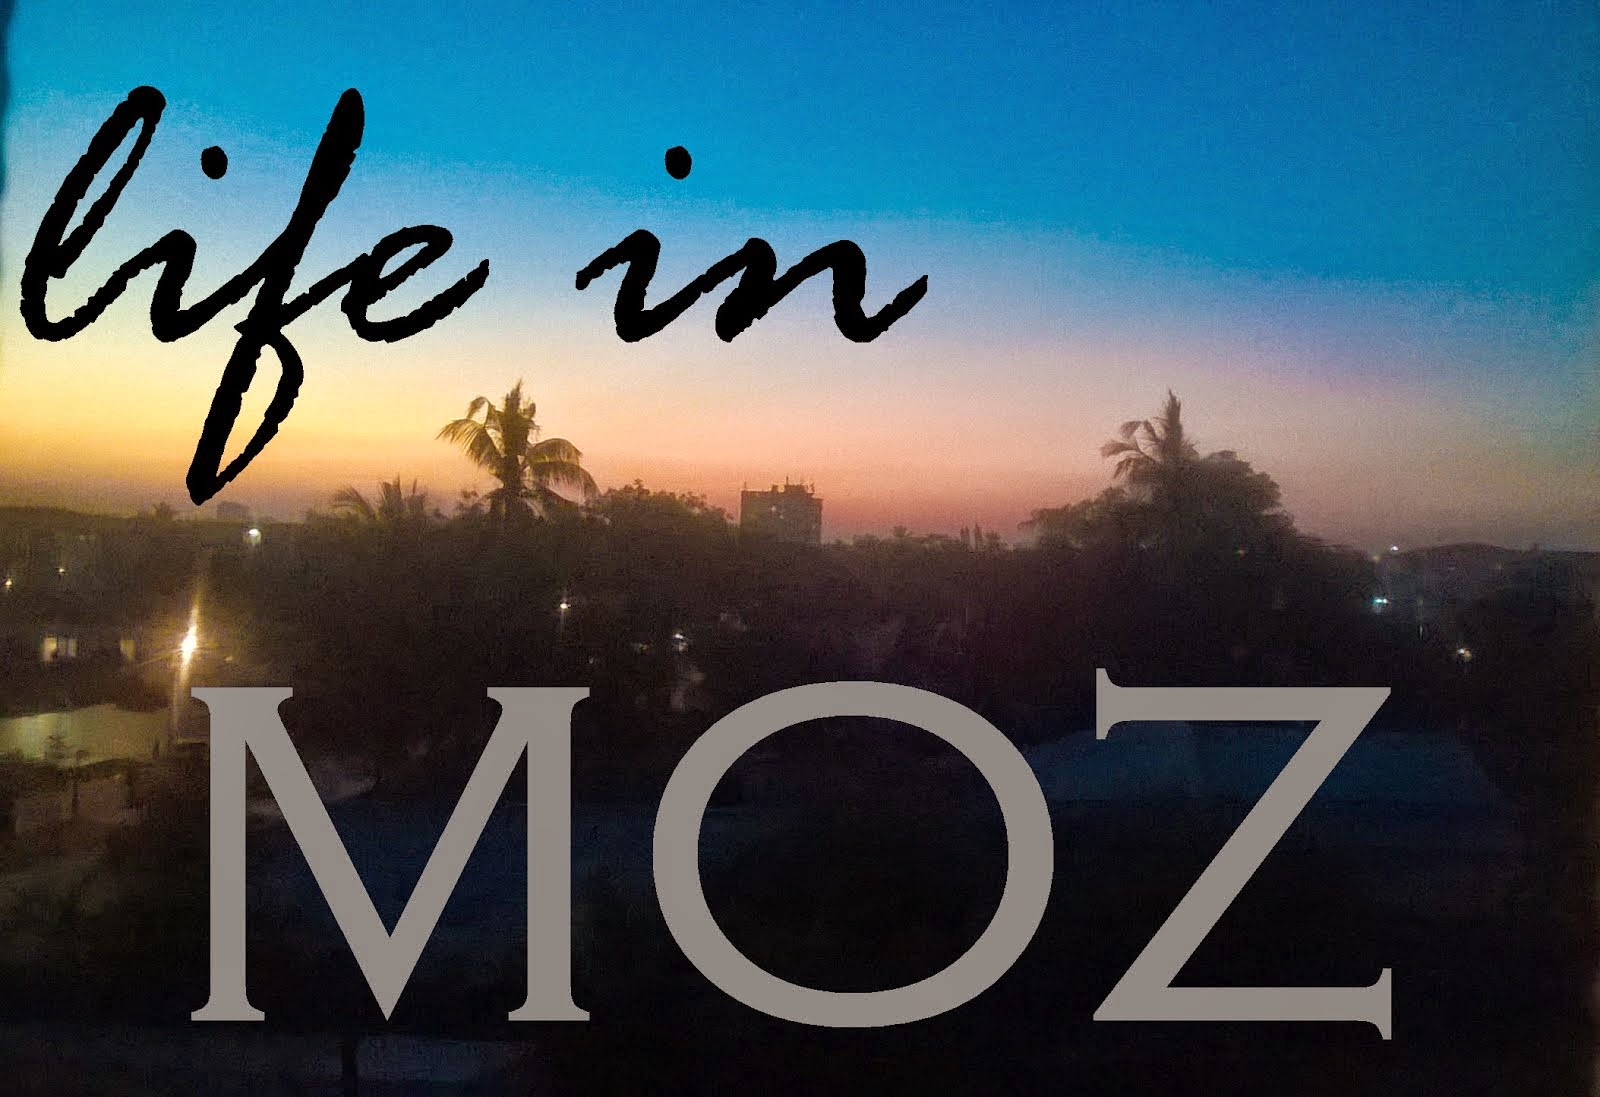 Read about life in Moçambique